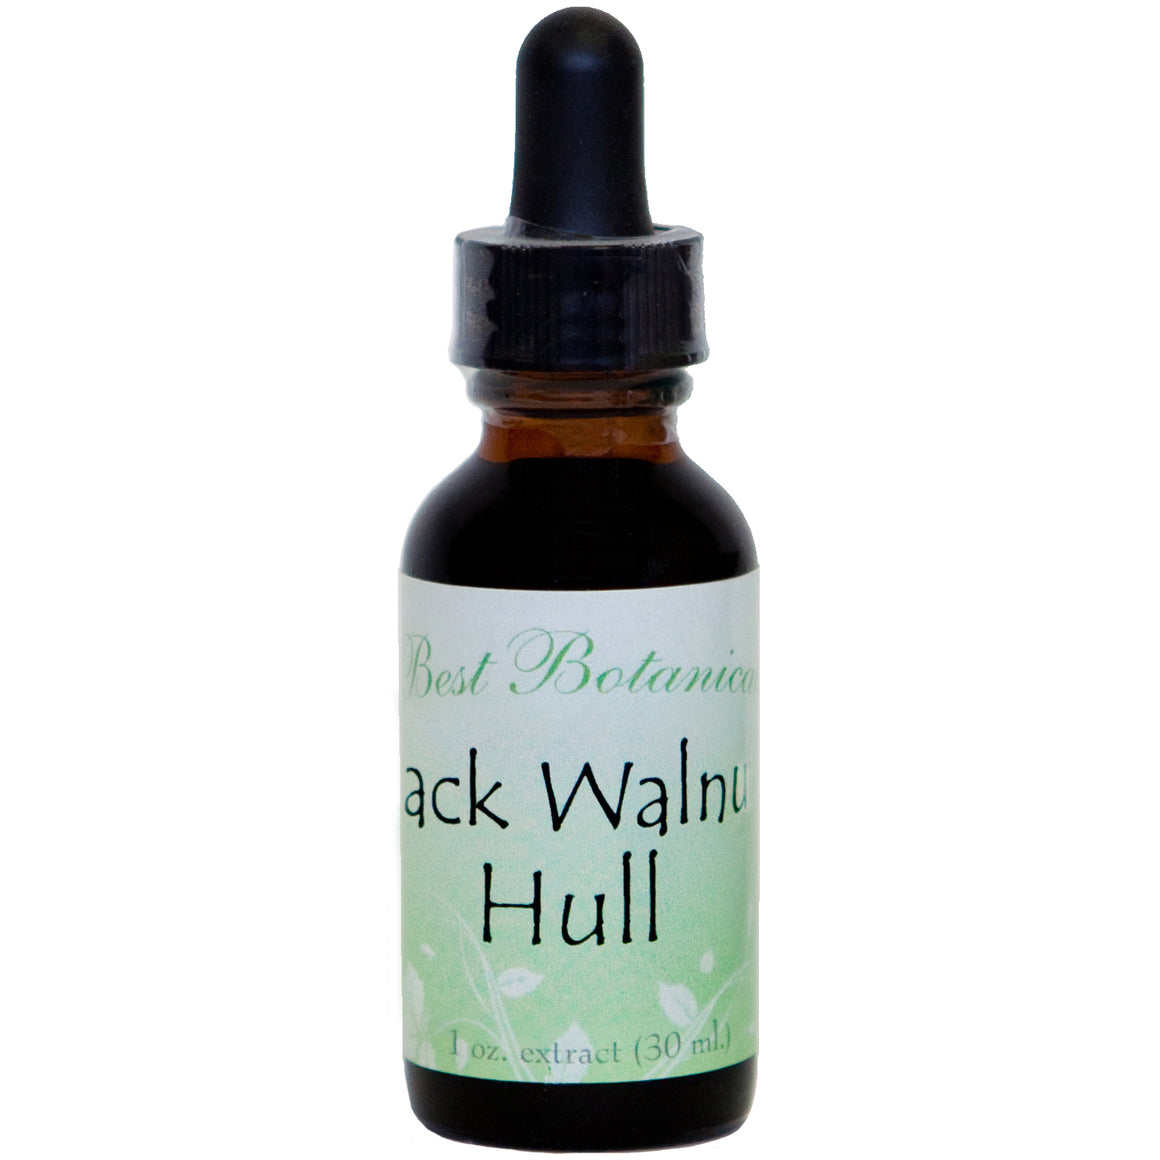 Black Walnut Hull Extract